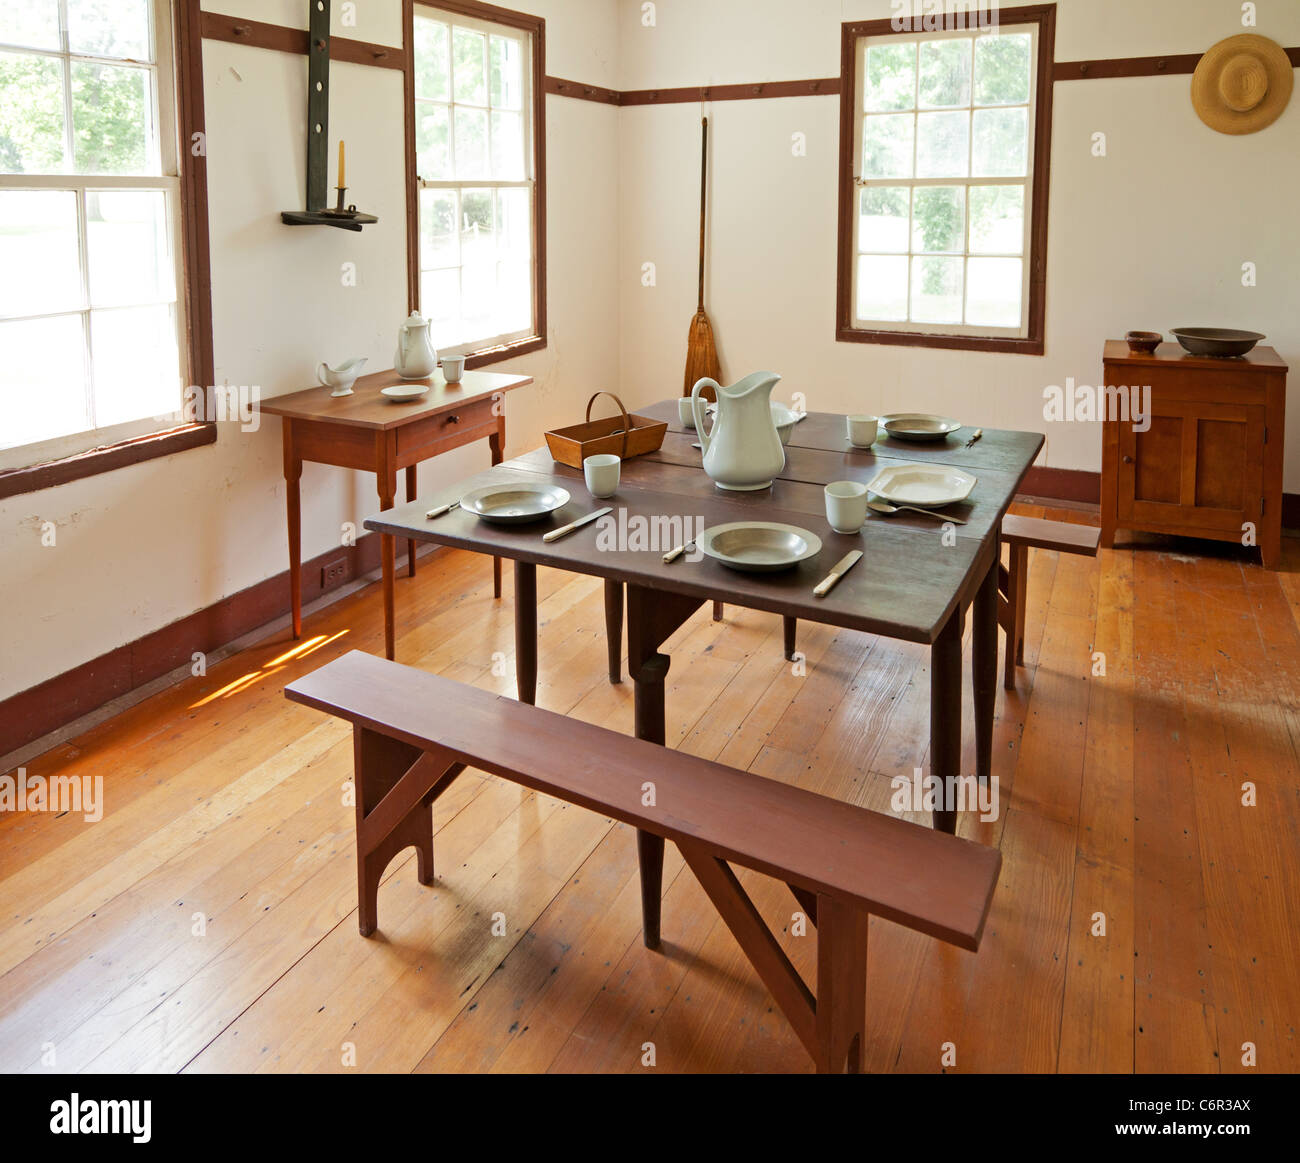 dining room interior in a shaker home stock photo, royalty free